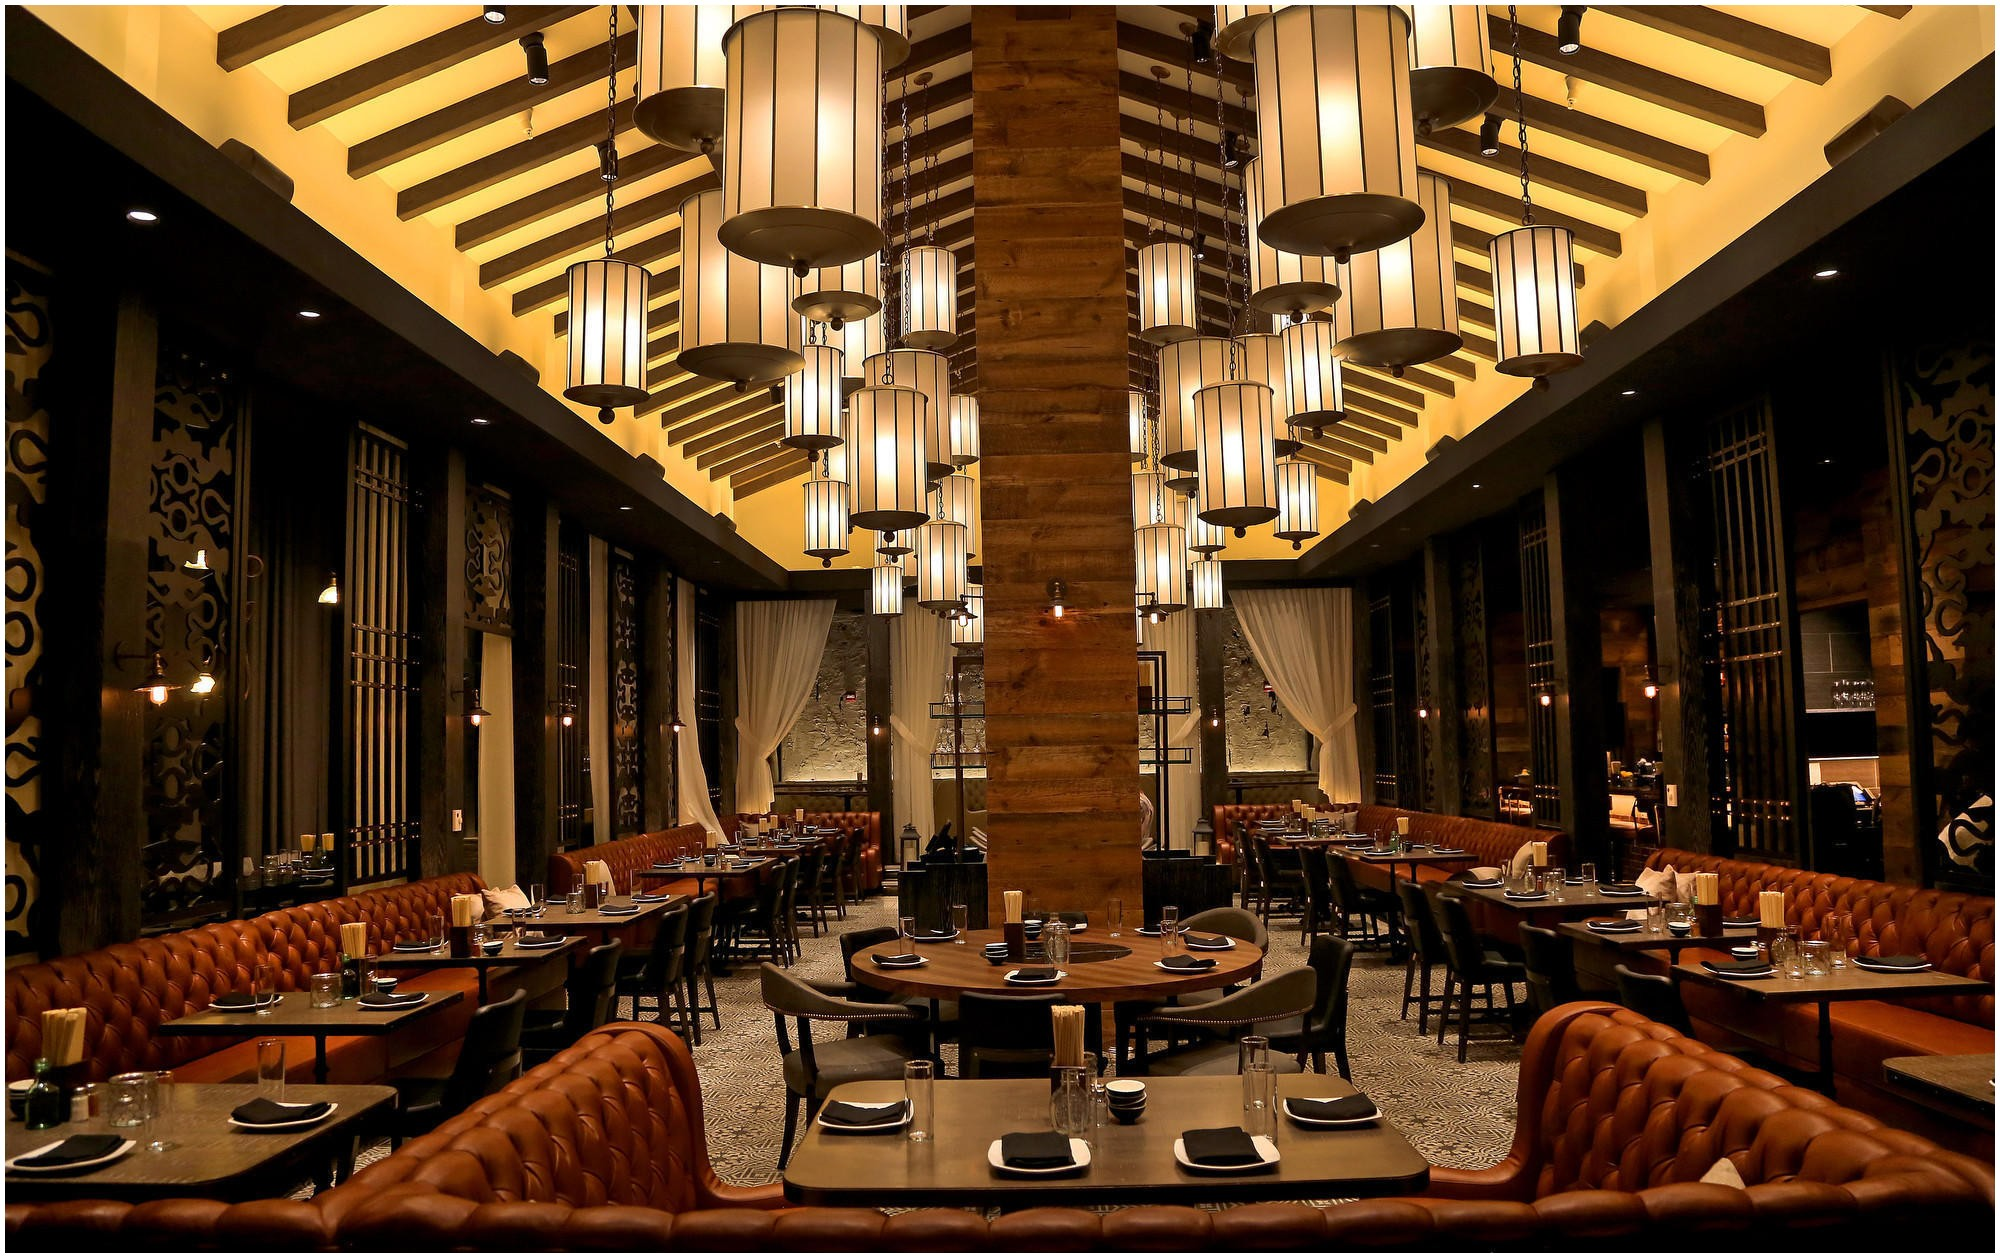 Wanted A four star restaurant in Broward Does Greater Fort Lauderdale have an outstanding eatery